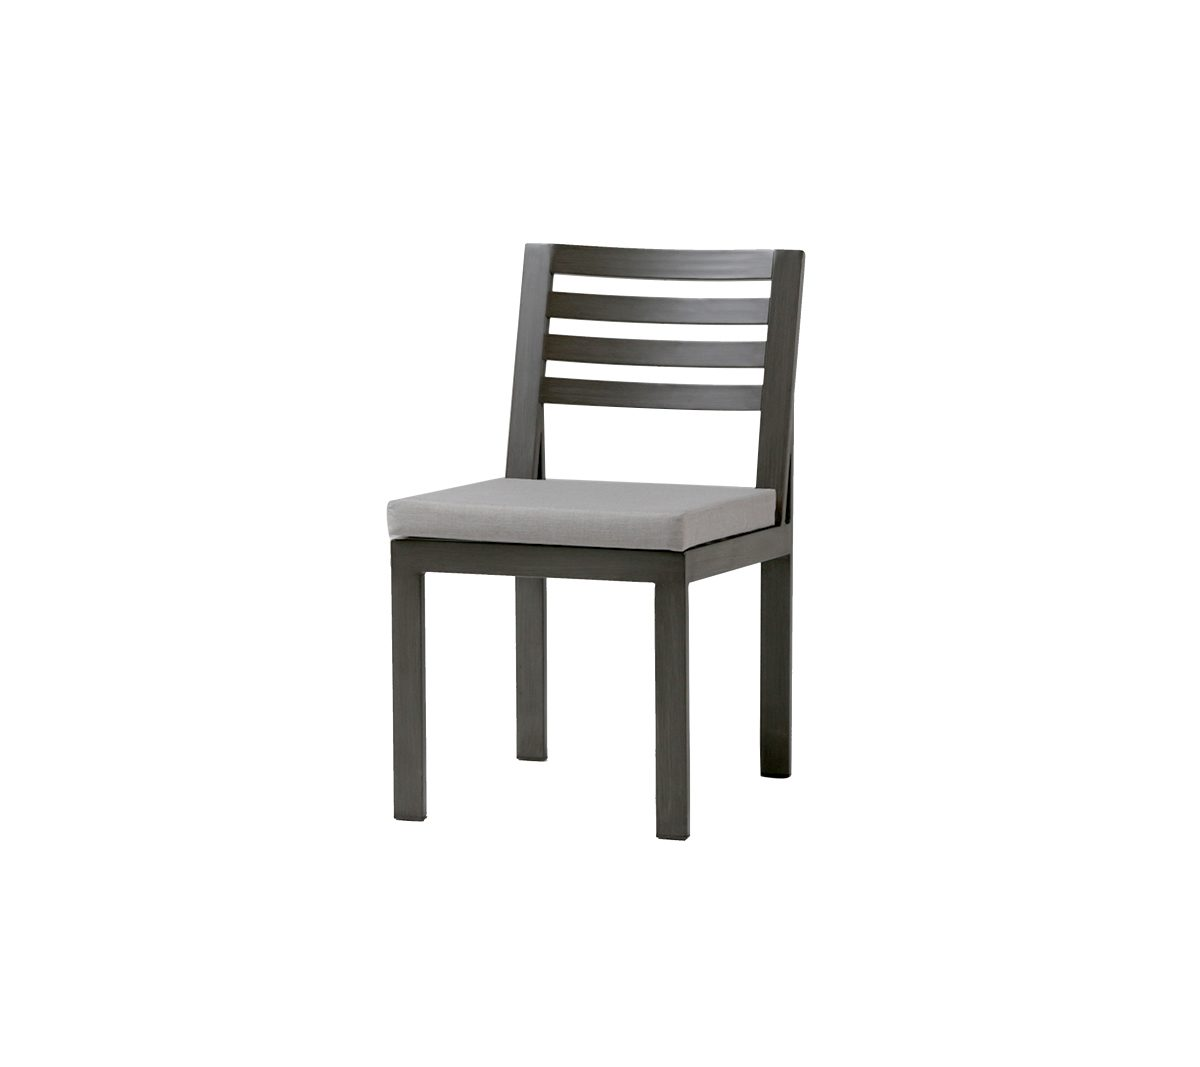 Element-5.0-Dining-Side-Chair-1200x1067